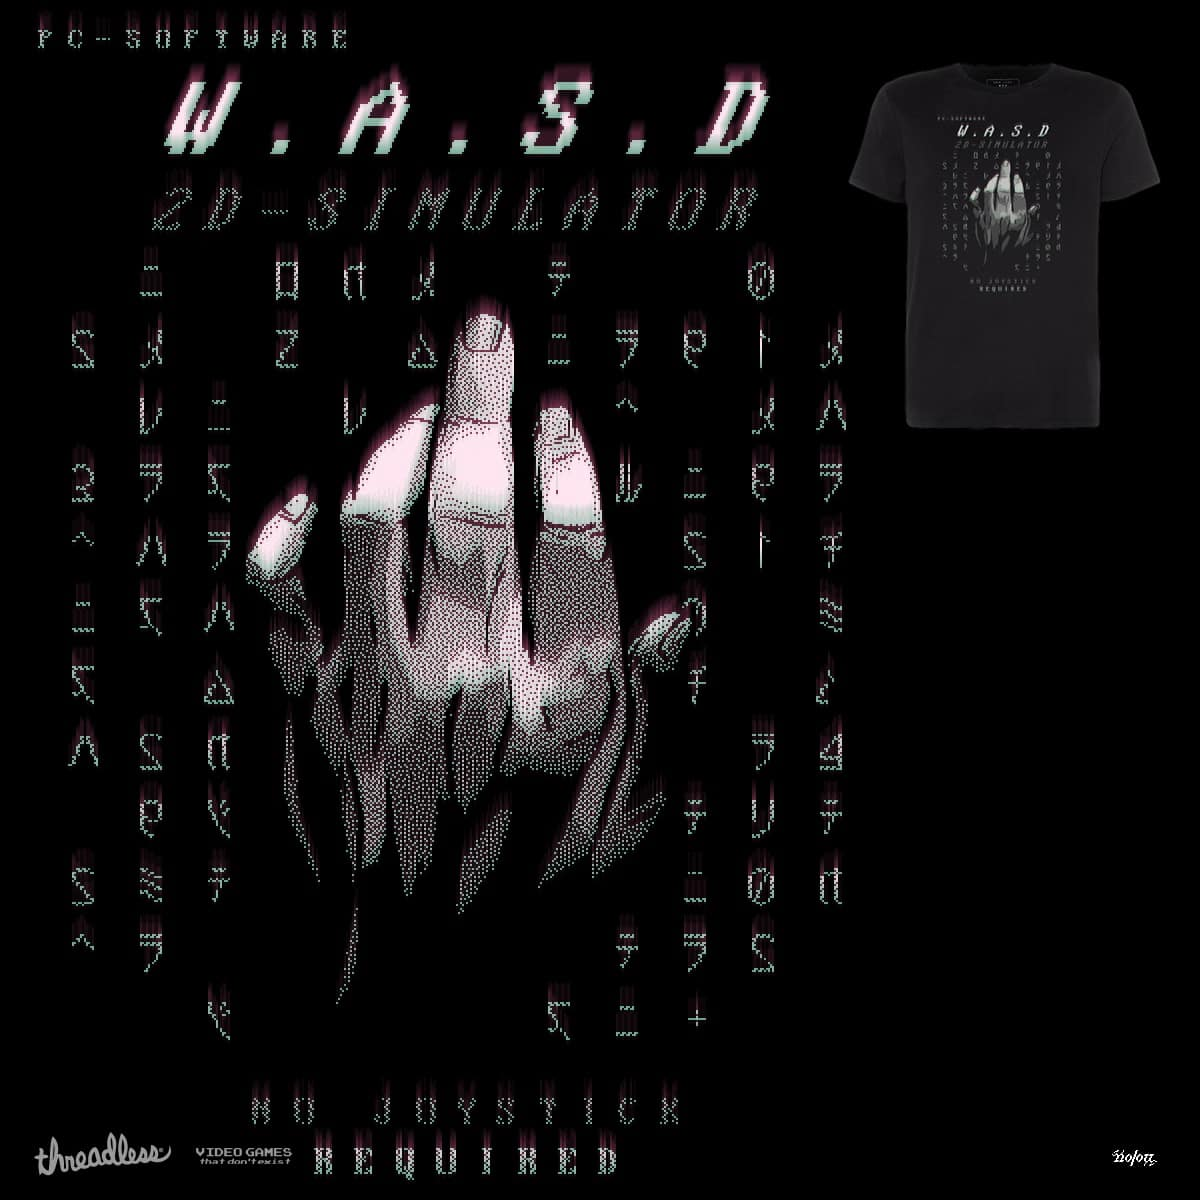 THE ULTIMATE W.A.S.D SIMULATOR by kolozz on Threadless